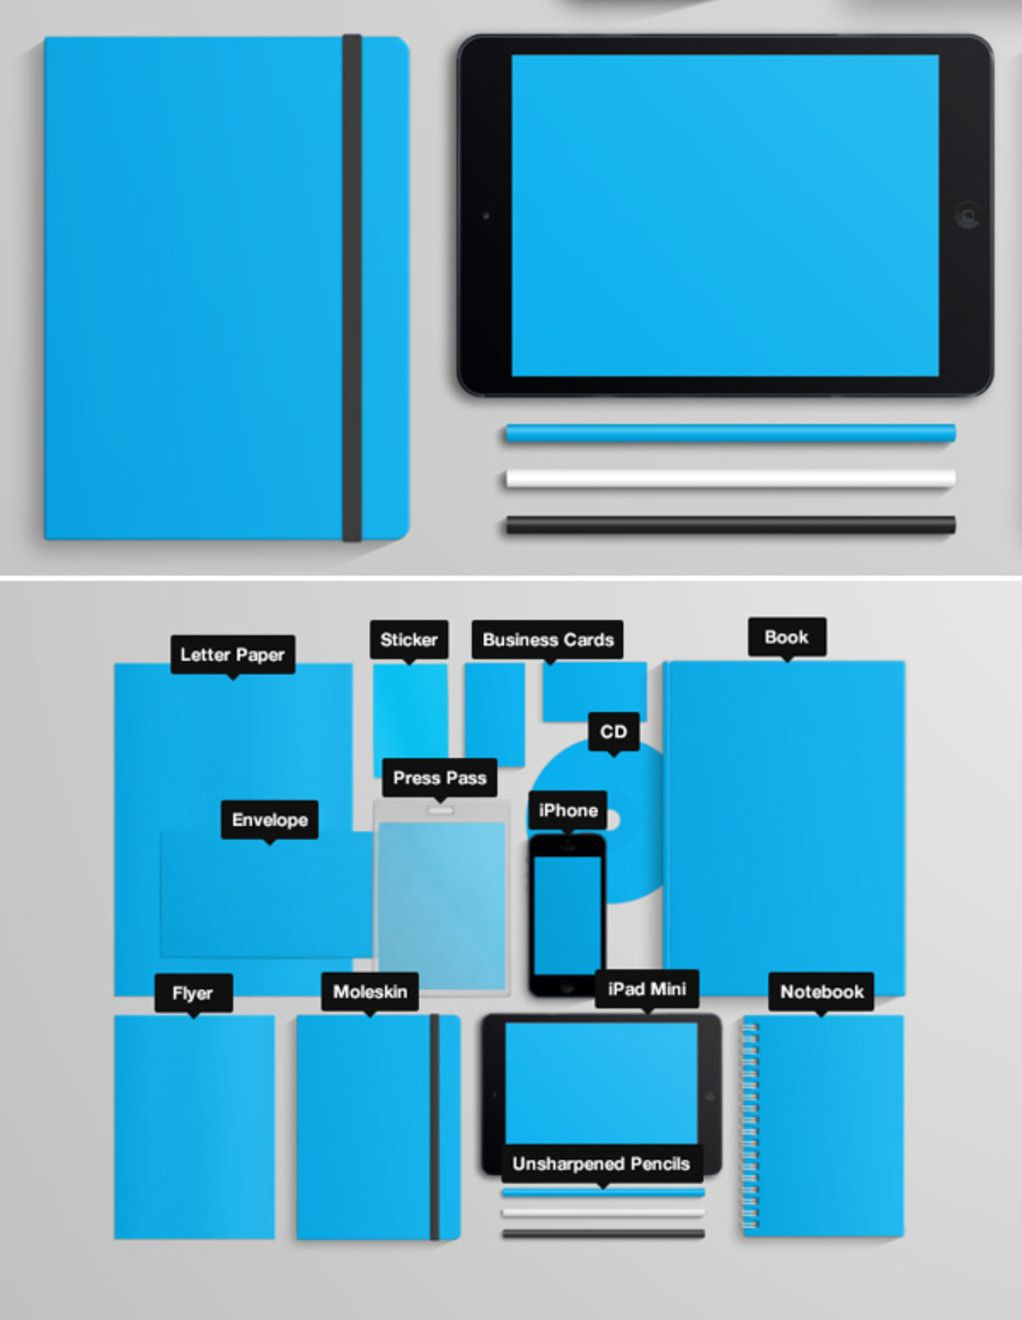 20 Free Branding and Identity Mockup Templates (With